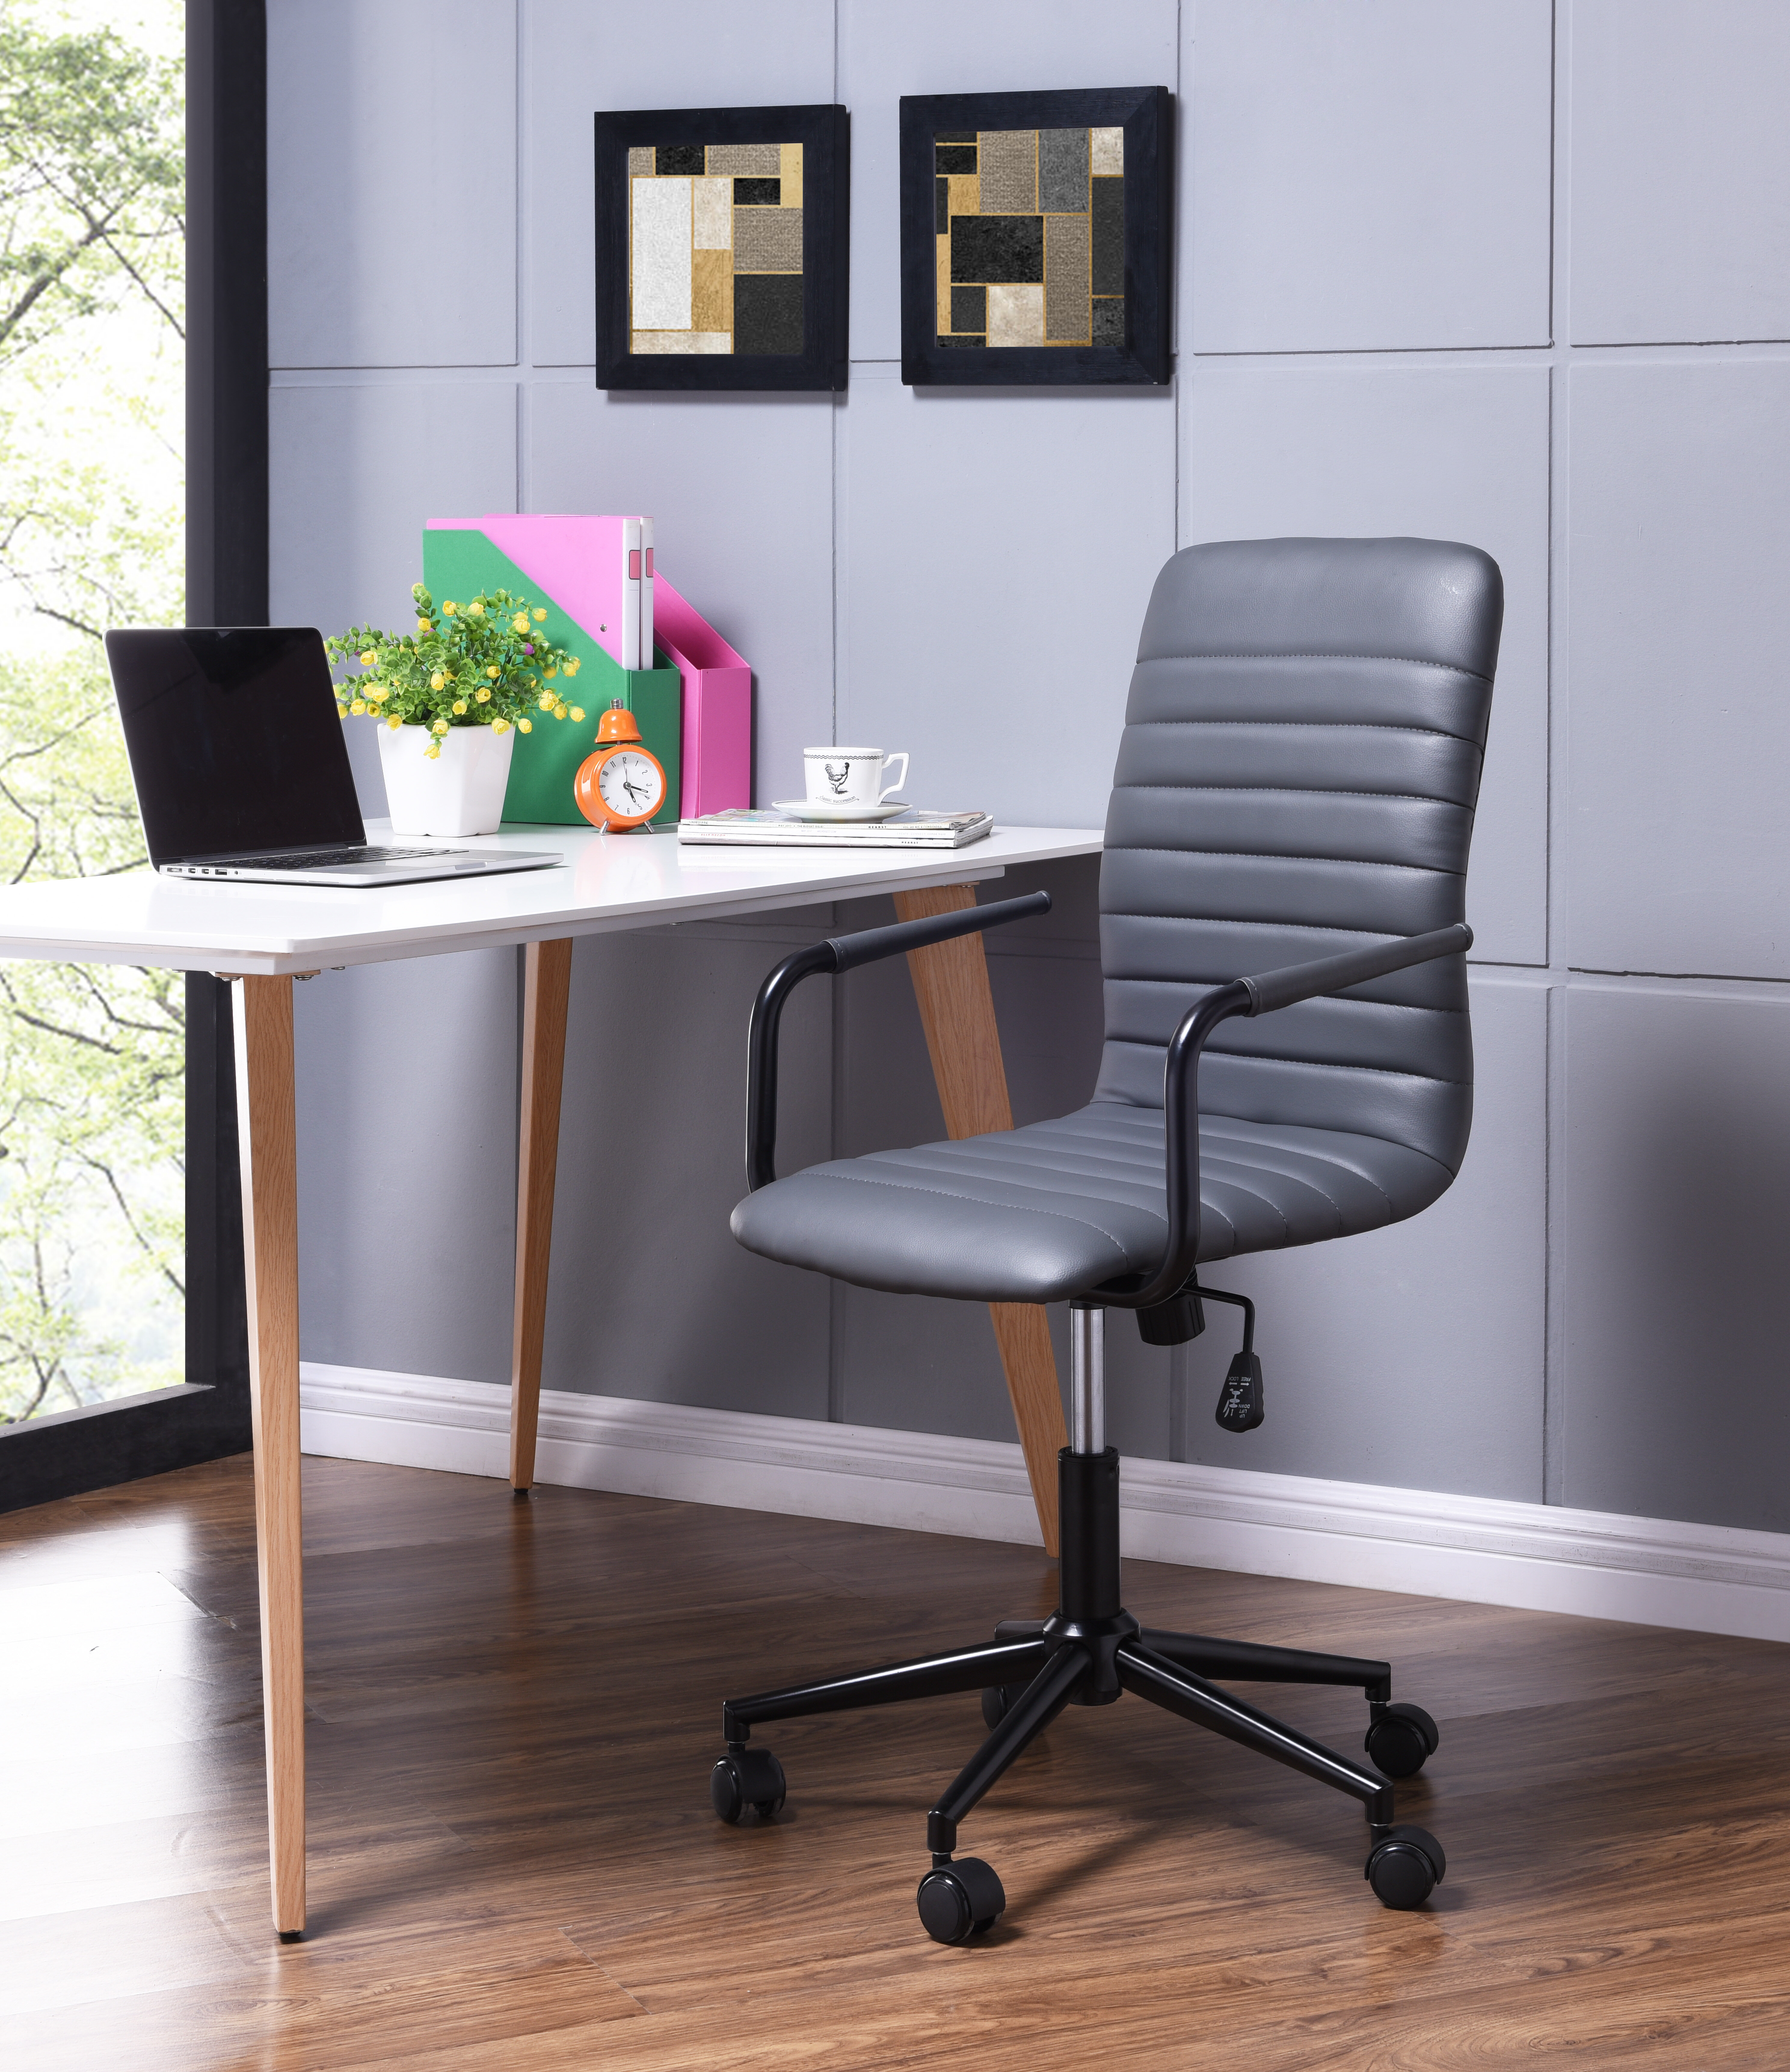 img computer information ergonomic title living black items furniture office mesh desk qatar chair back